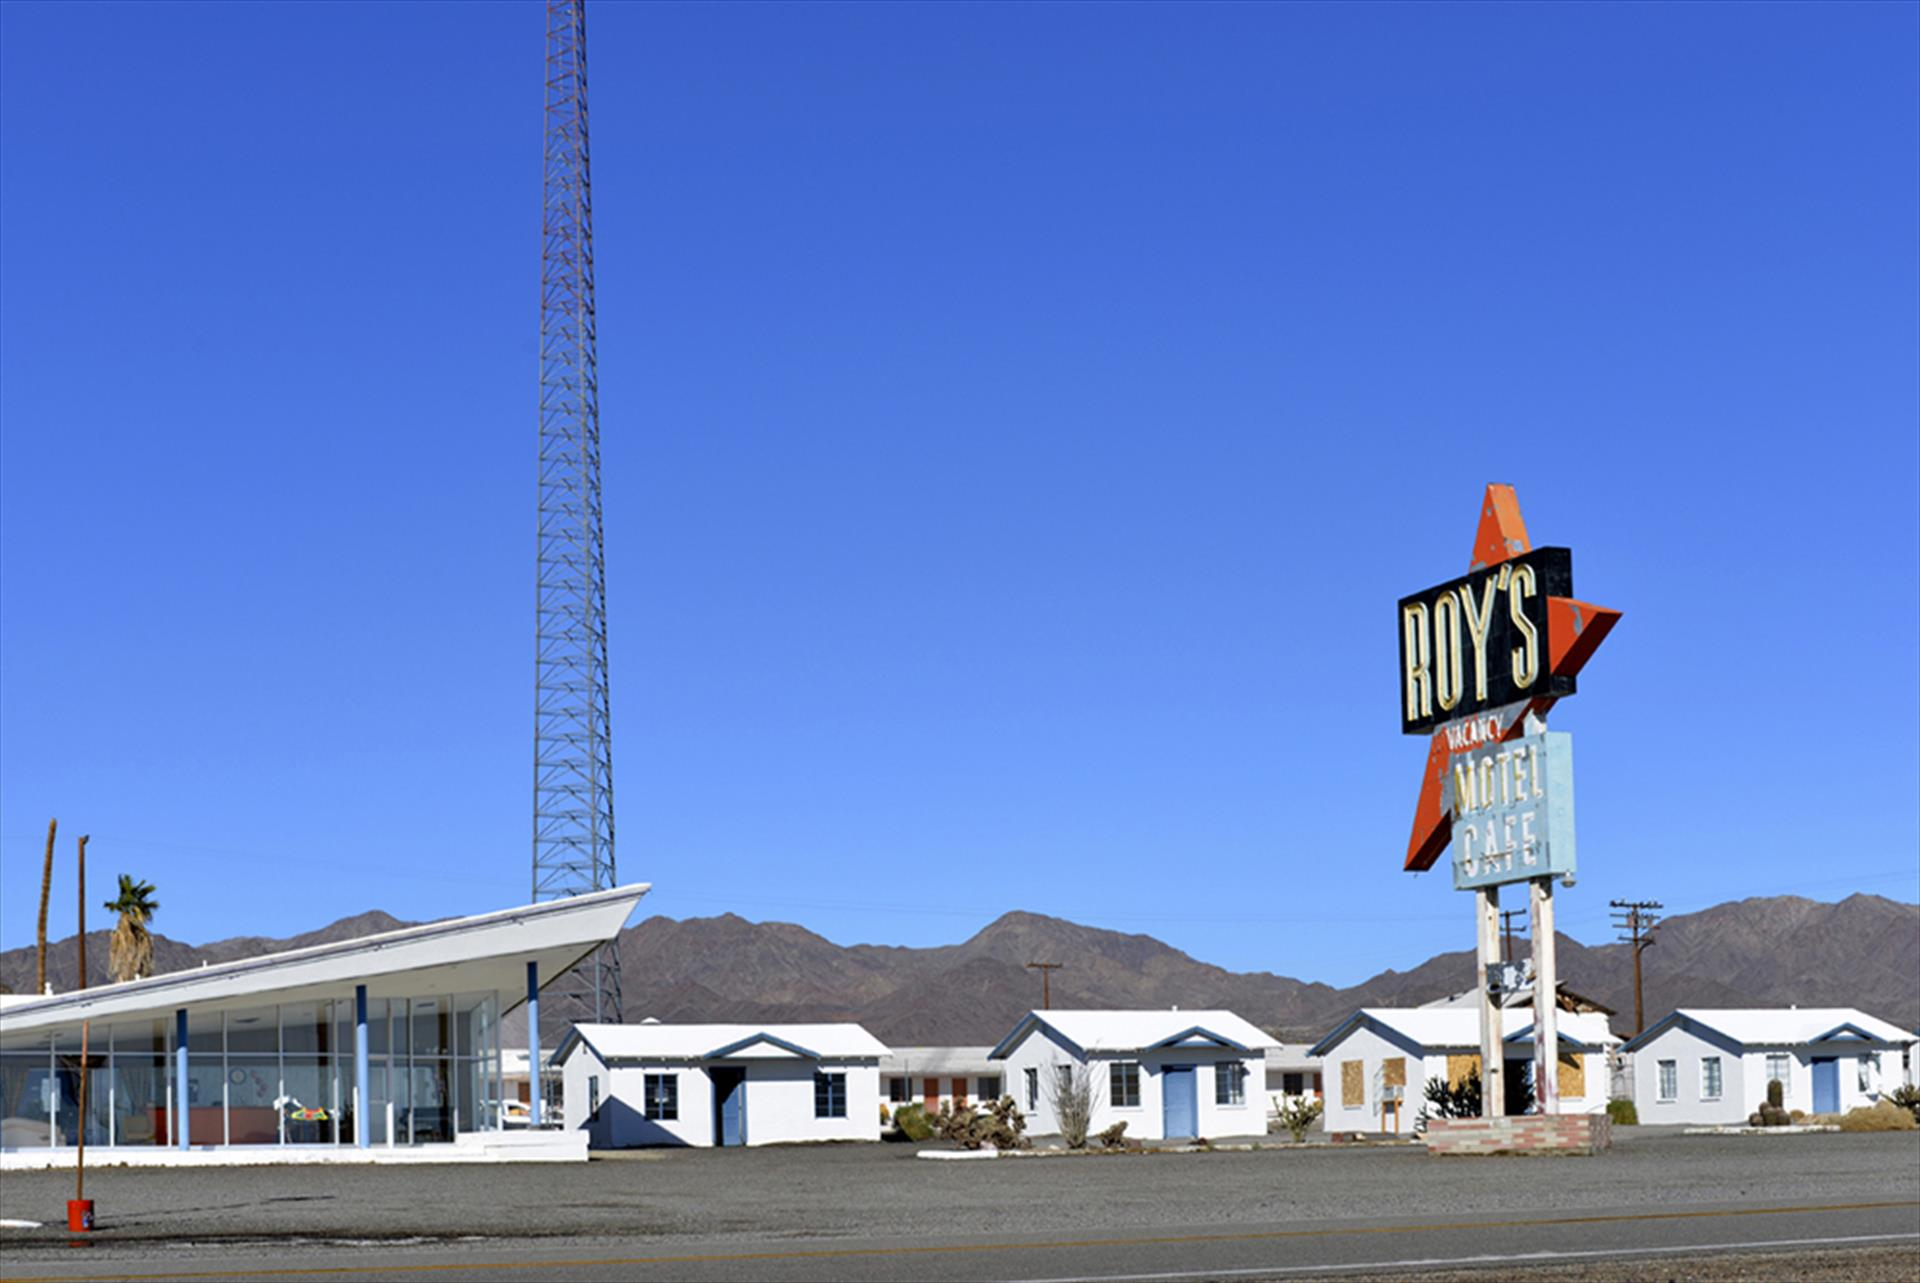 Shelley Curtis, Roy's on Route 66, Amboy, California